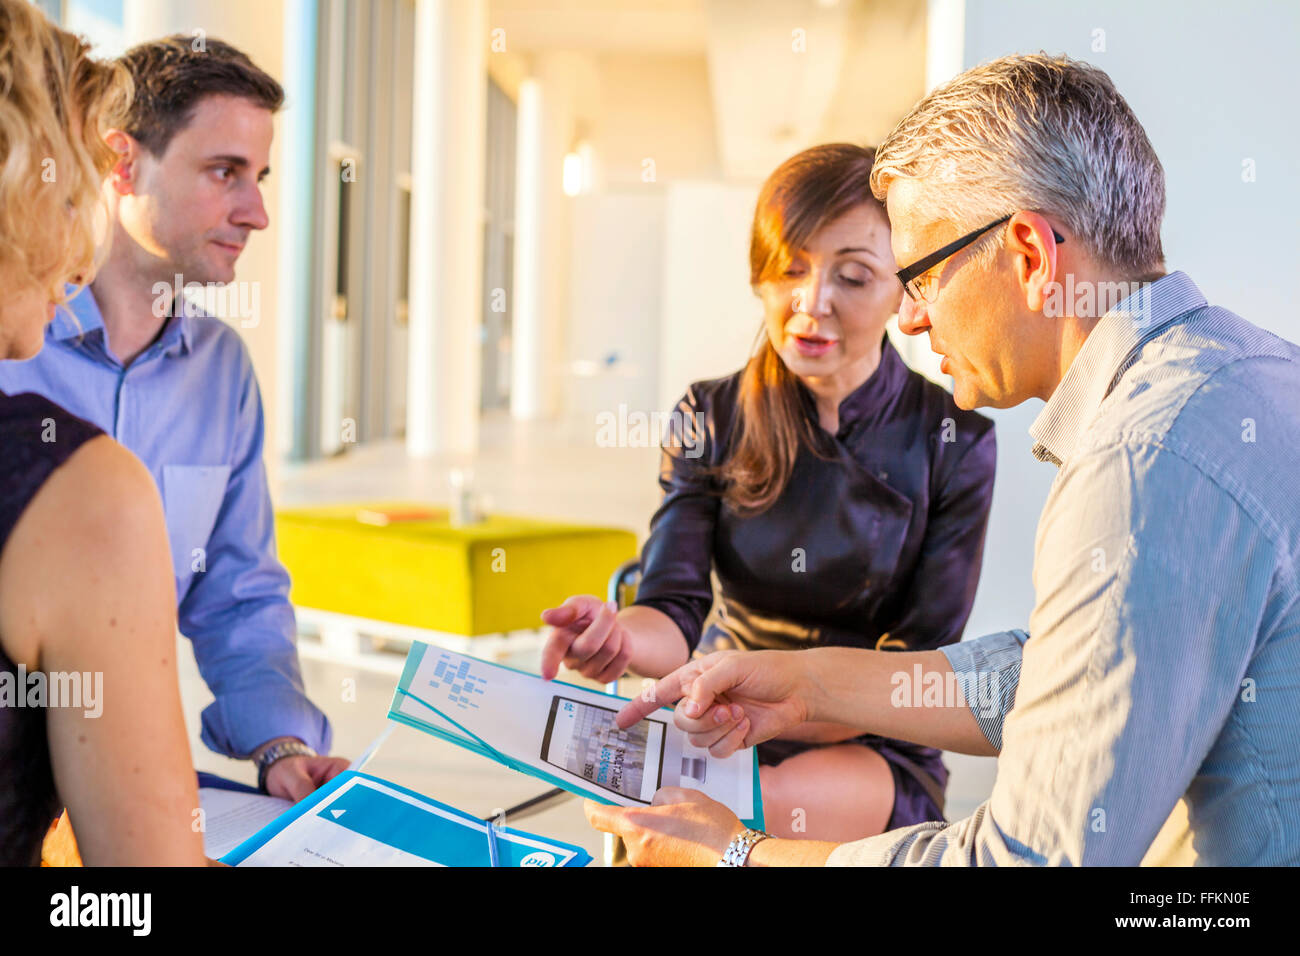 Meeting of architects and business people in modern office - Stock Image